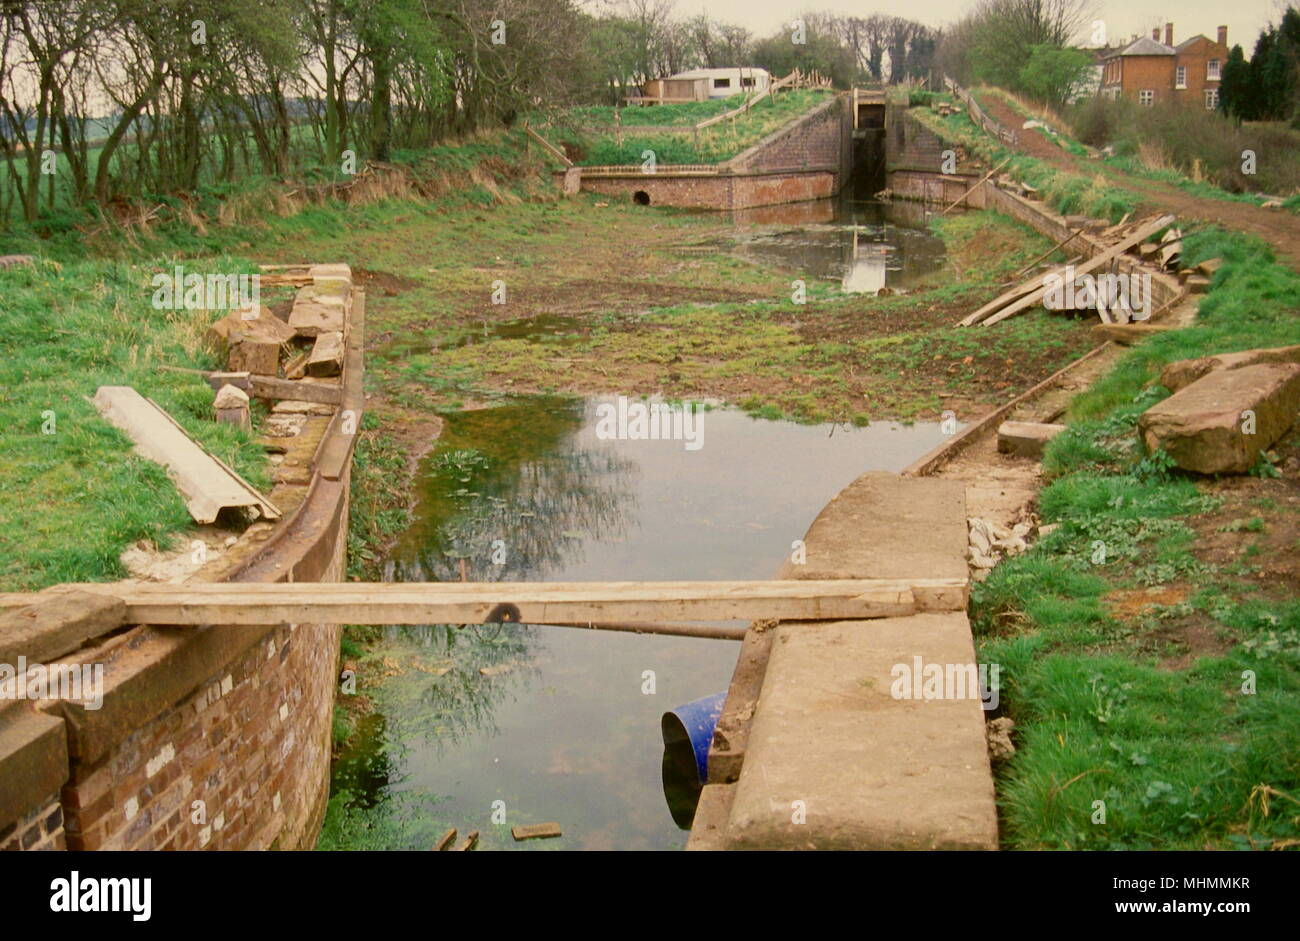 View of a lock on the Droitwich Canal at Hanbury, prior to restoration work being carried out.       Date: 1989 - Stock Image